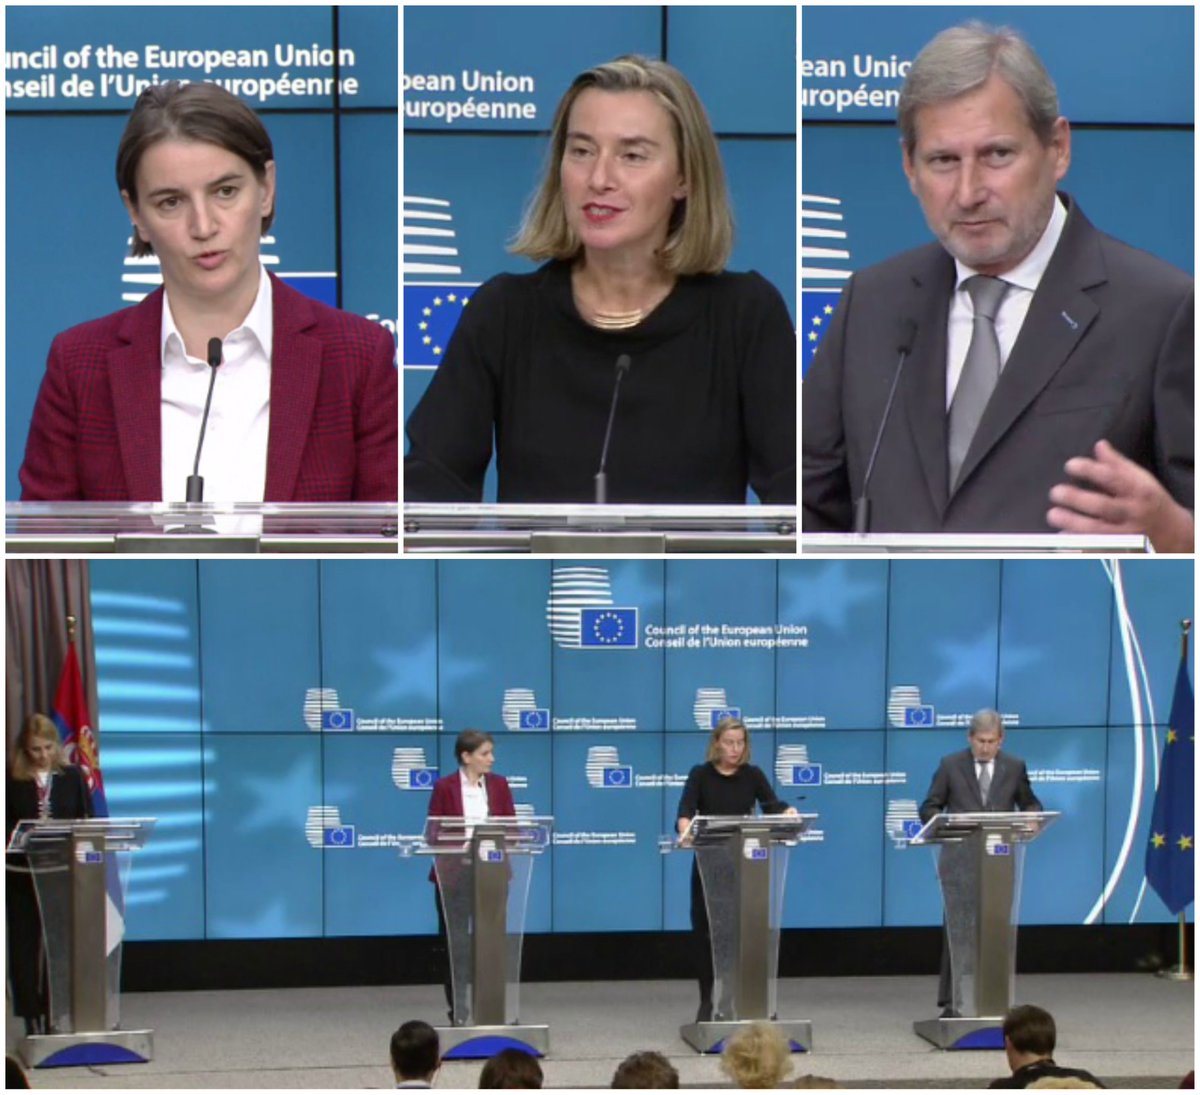 test Twitter Media - In case you missed it:📹Watch #EU-Commissioner @JHahnEU's opening remarks at the joint Press conference with @FedericaMog & @SerbianPM following the🇪🇺🇷🇸#EU-#Serbia Stabilisation and Association Council➡️https://t.co/sDYWqzjNys https://t.co/xIZ6cOOioc